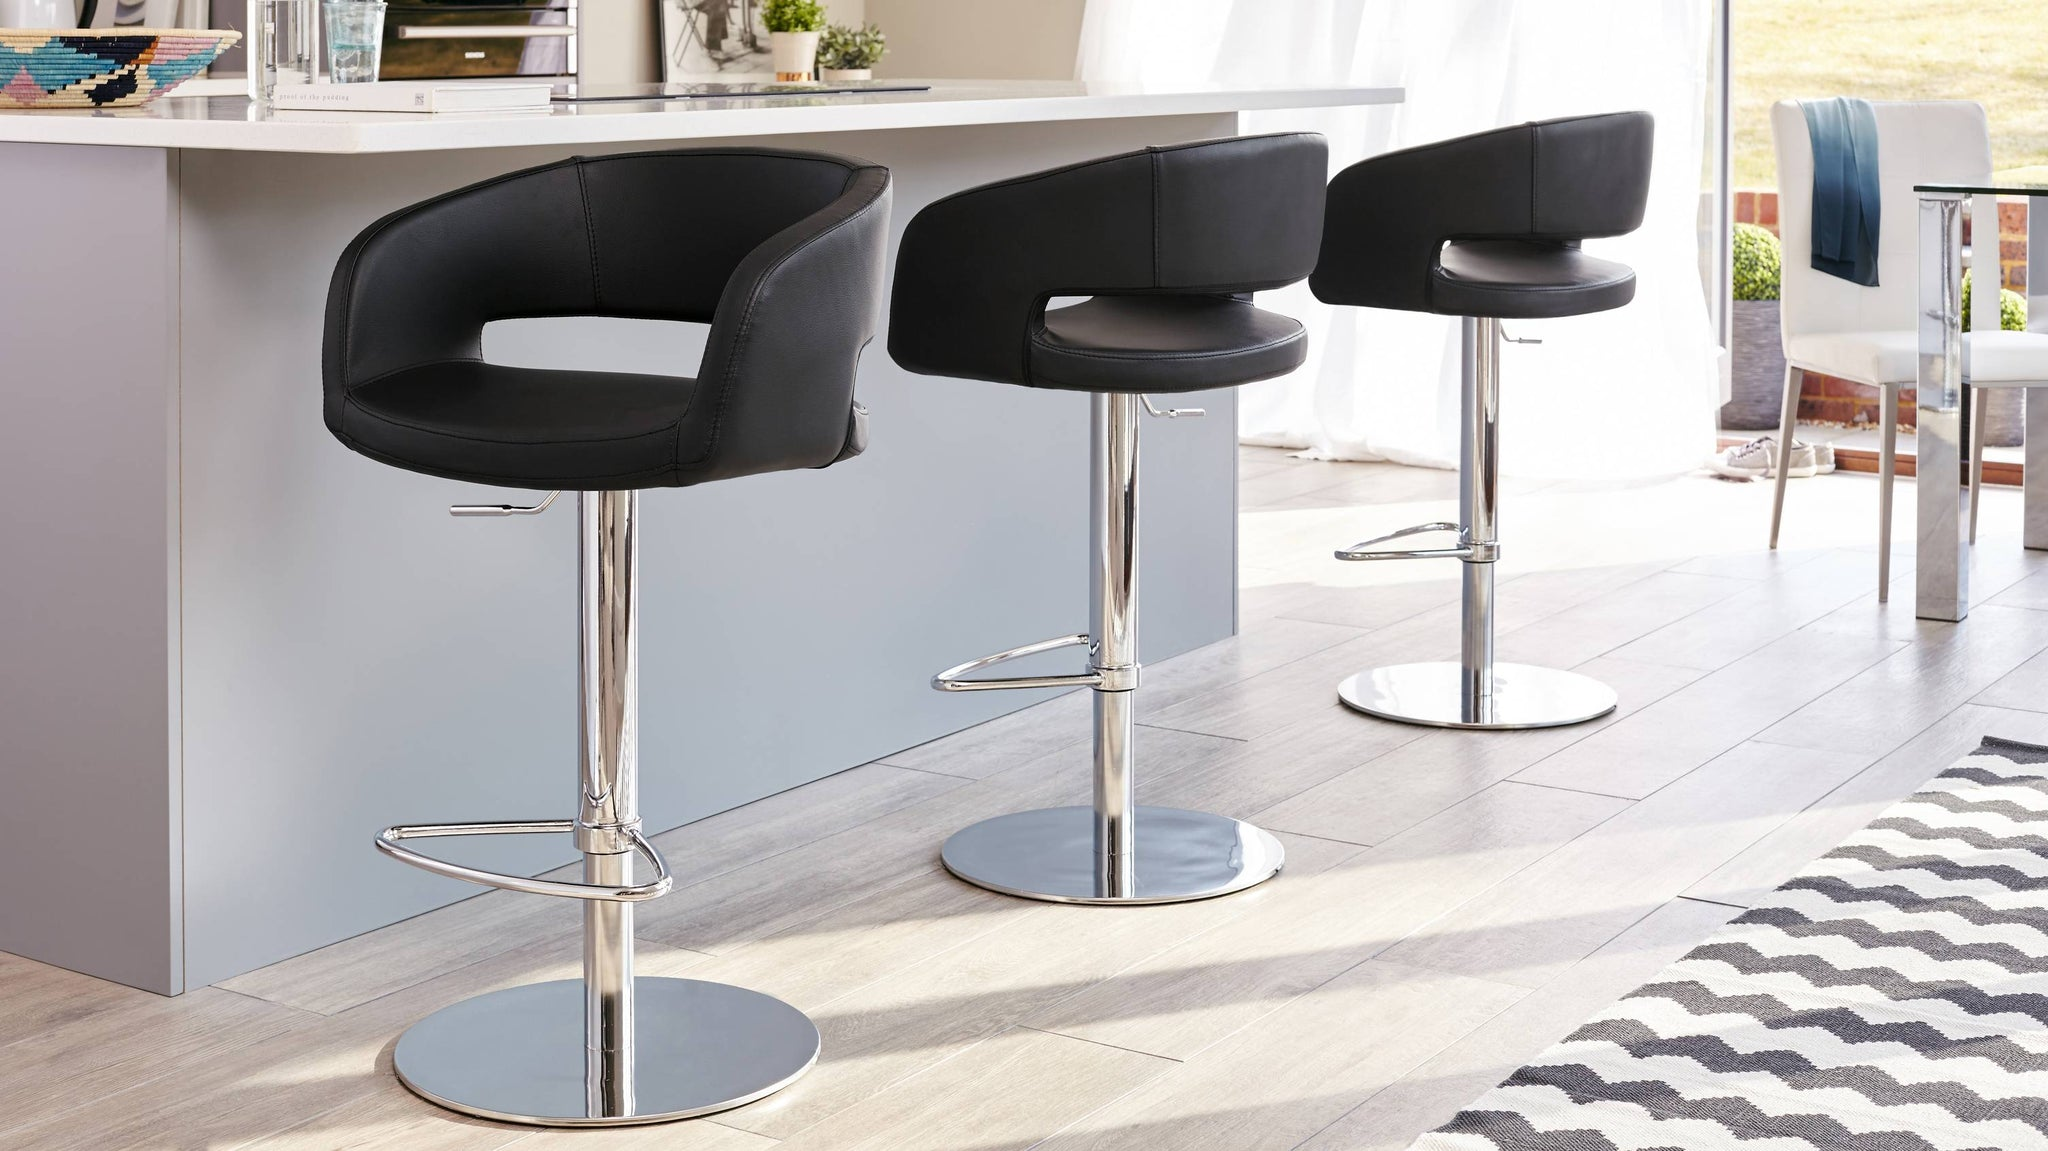 Black Bar Stool with Curved Back Rest